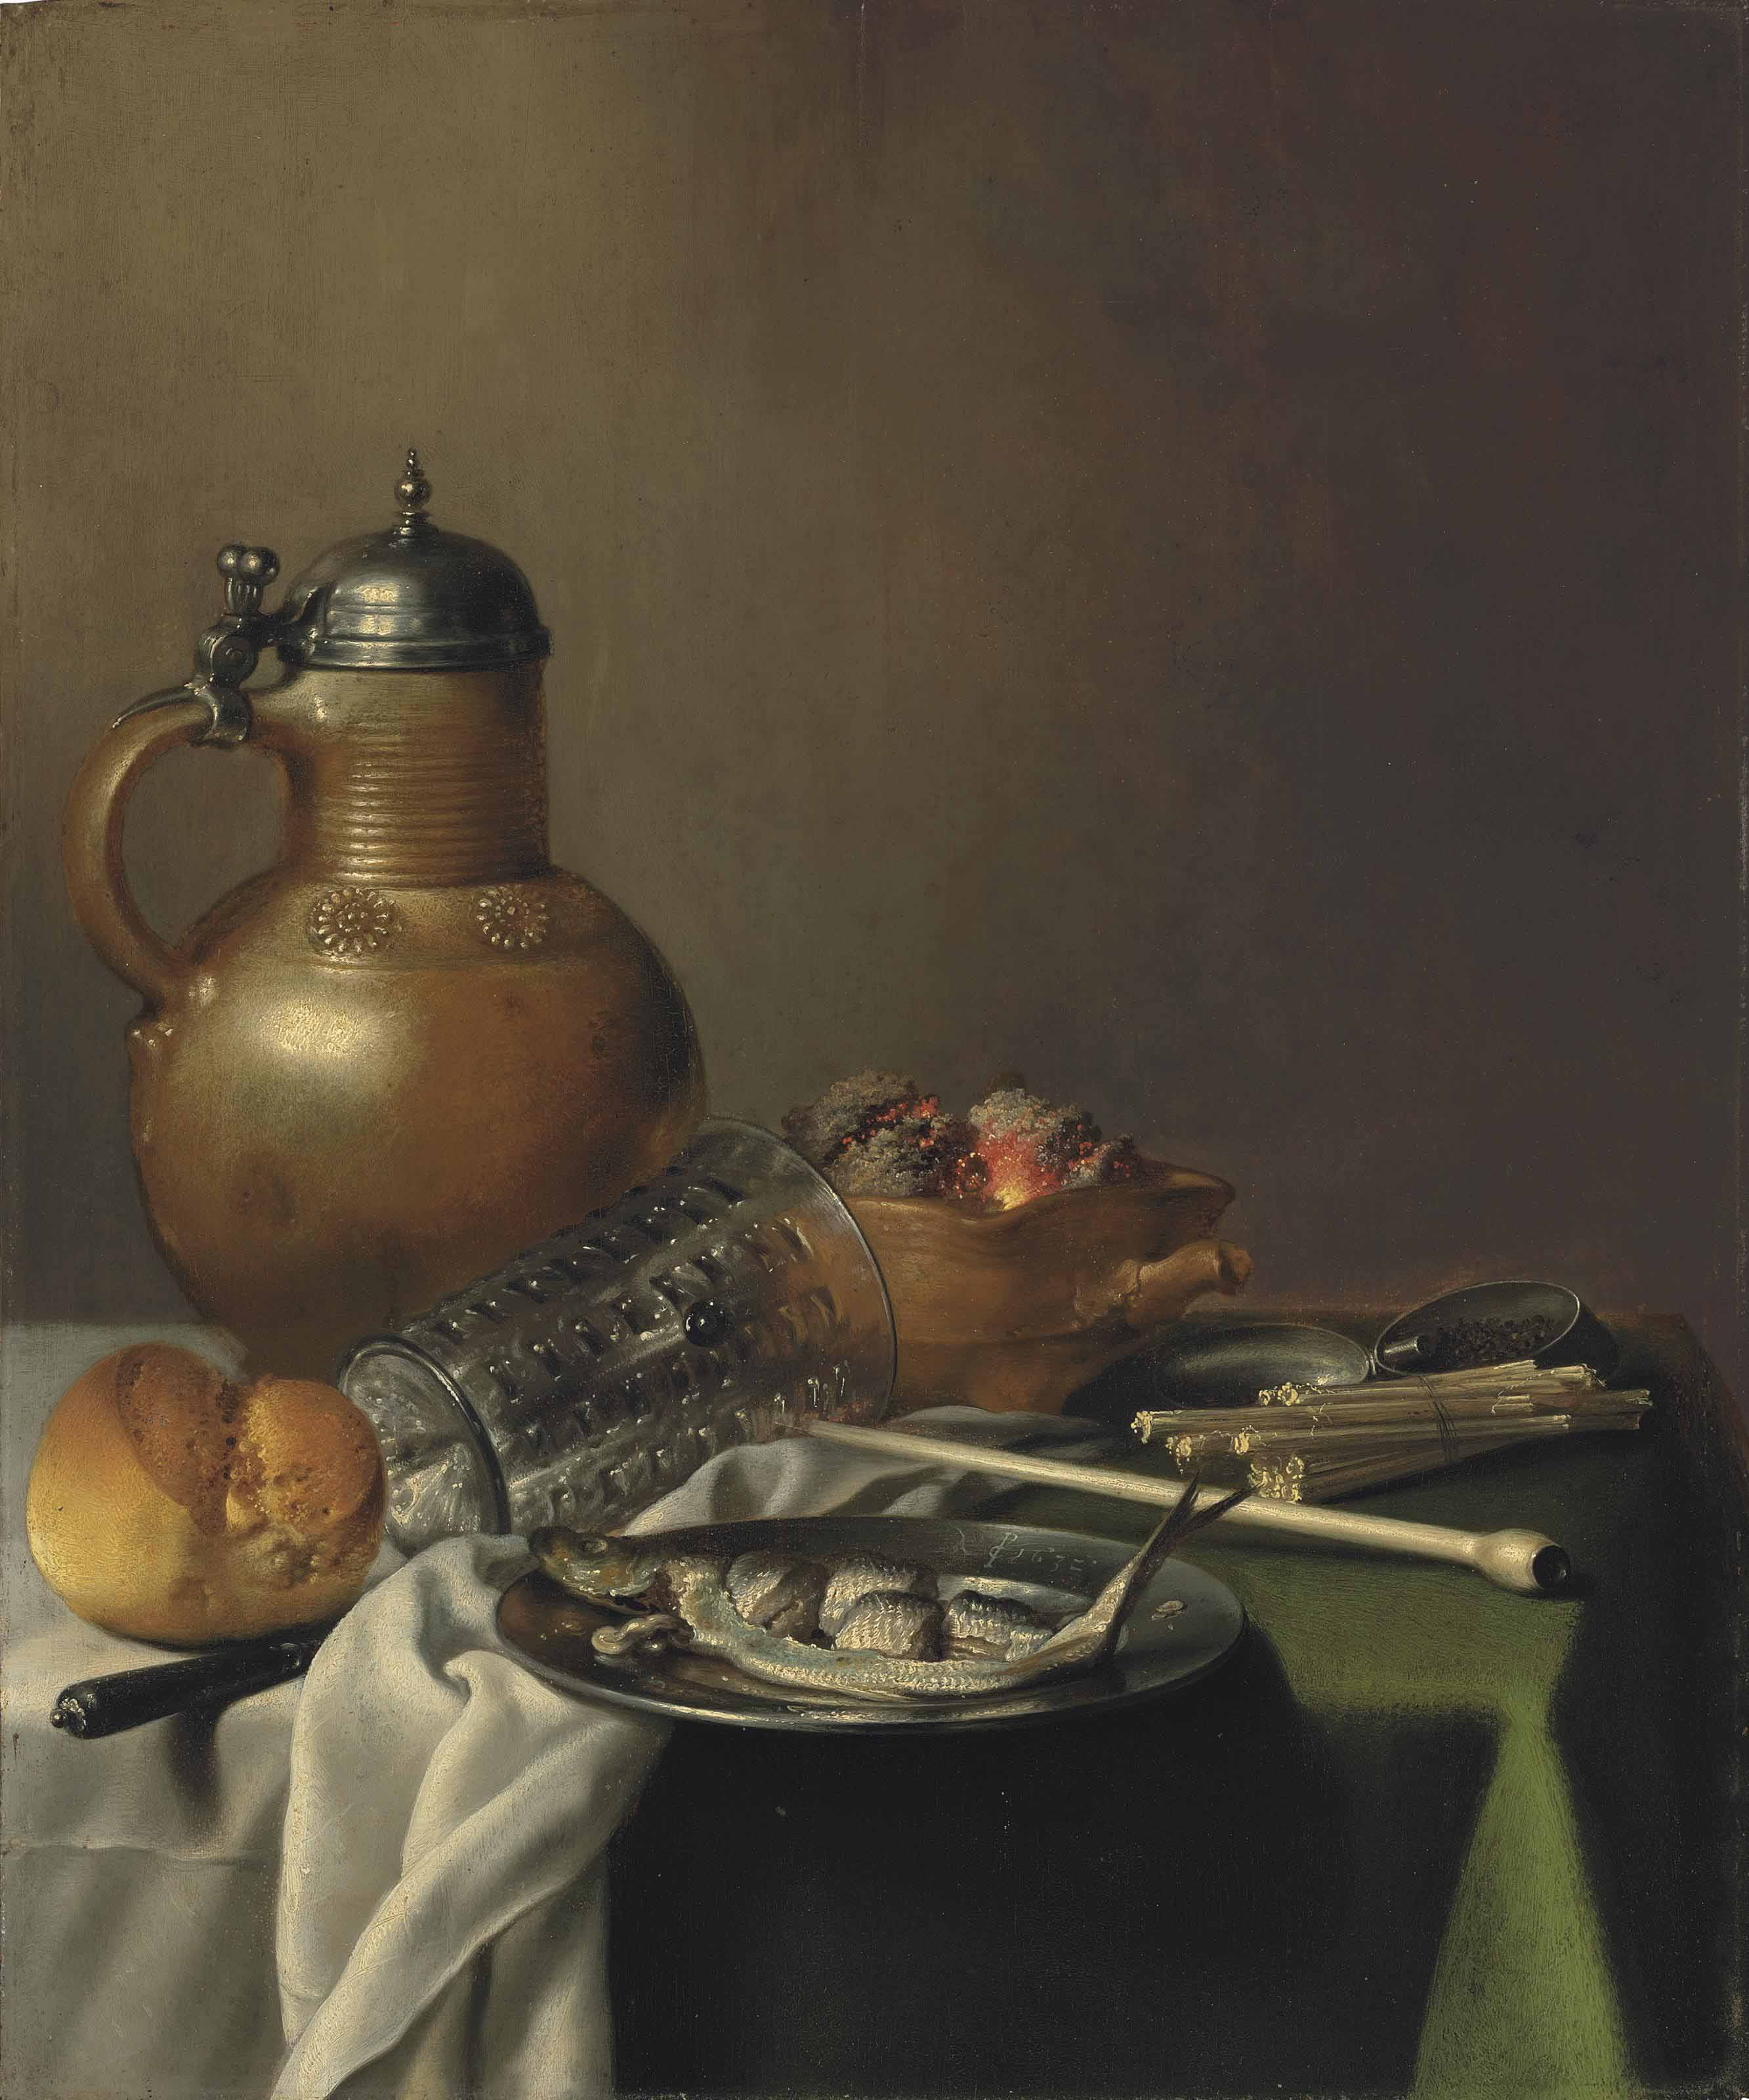 A herring on a pewter platter, with a roll of bread, a knife, an upturned glass, a stoneware and pewter jug, a red earthenware brazier, a white clay pipe, a bundle of matches and a pewter tobacco tin, on a partially draped table